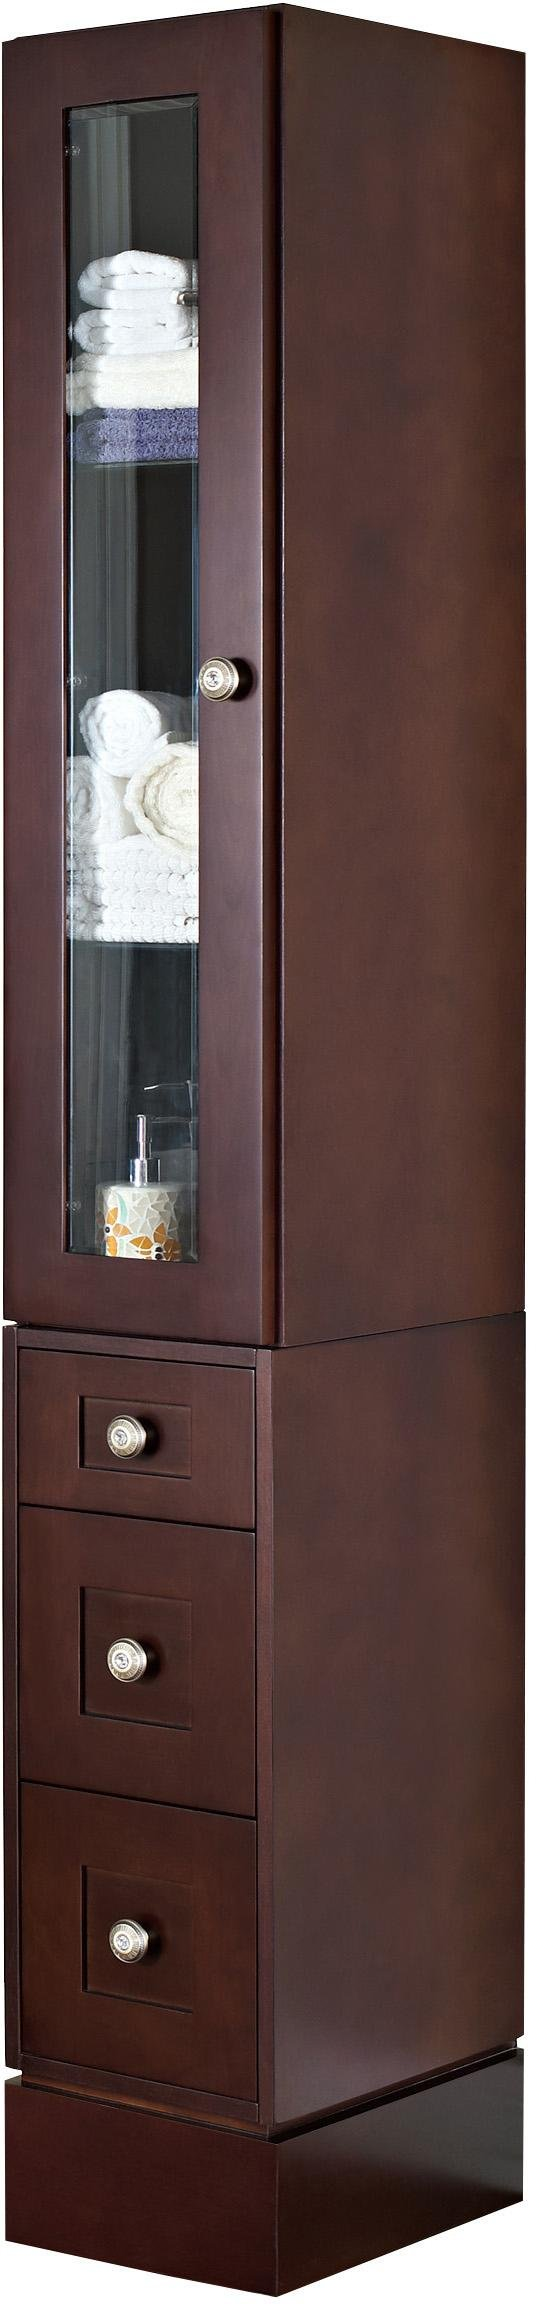 American Imaginations AI-1147 12-in. W Solid Cherry Wood Linen Tower With Soft-close Door And Drawers In Coffee Finish